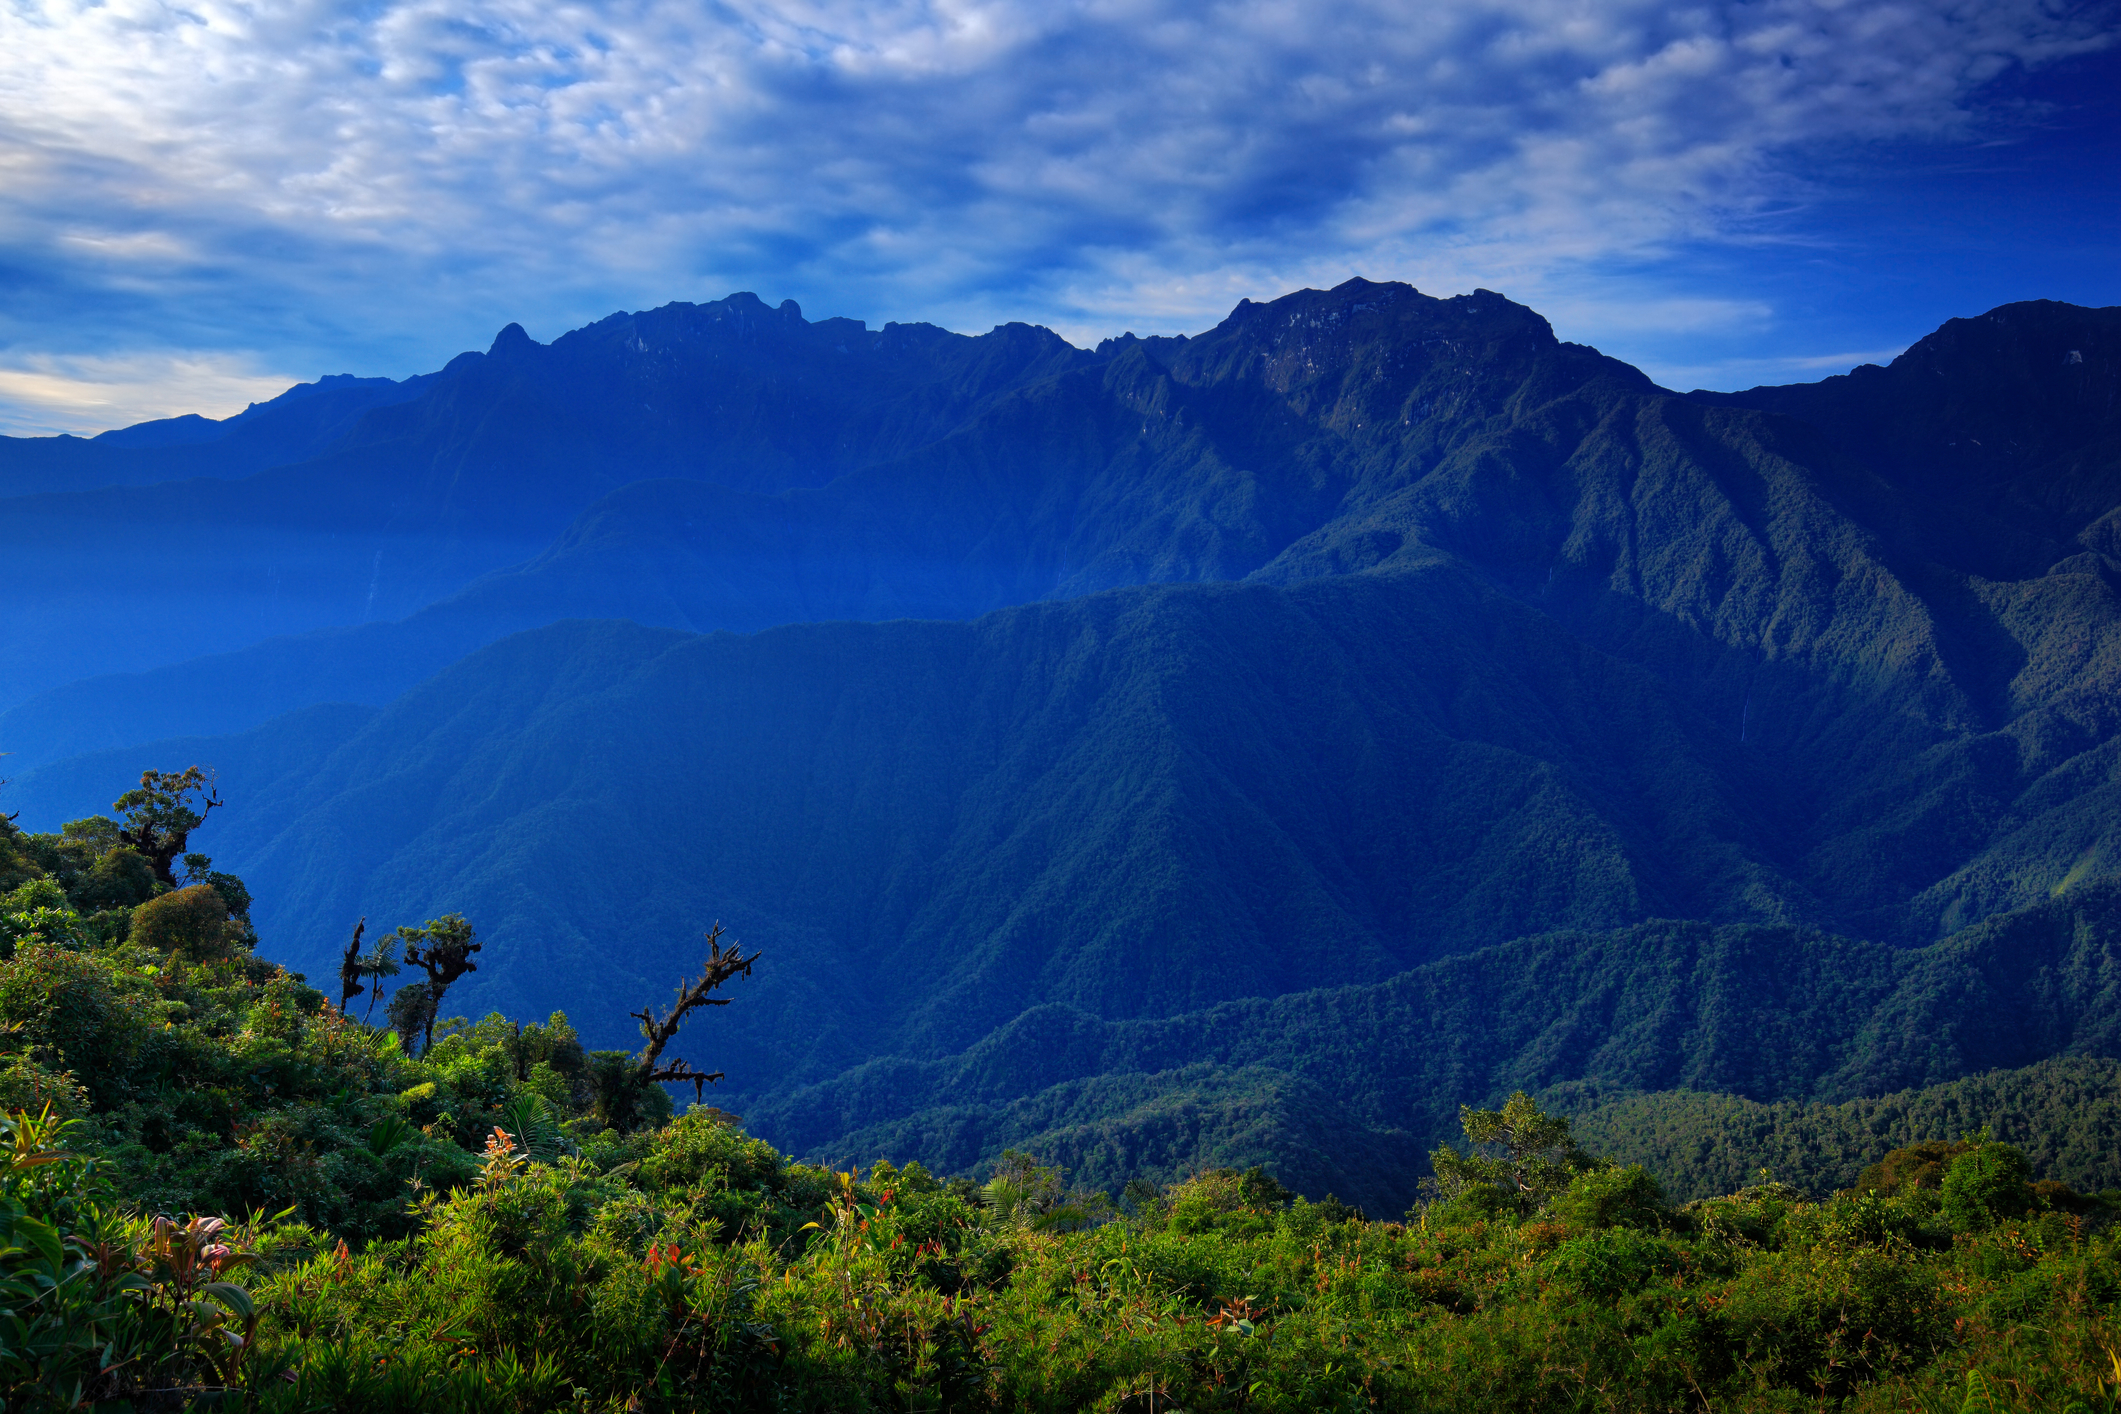 moutain-tropical-forest-with-blue-sky-and-clouds-tatama-national-park-high-andes-mountains-of-the-cordillera-colombia-67957505.jpg